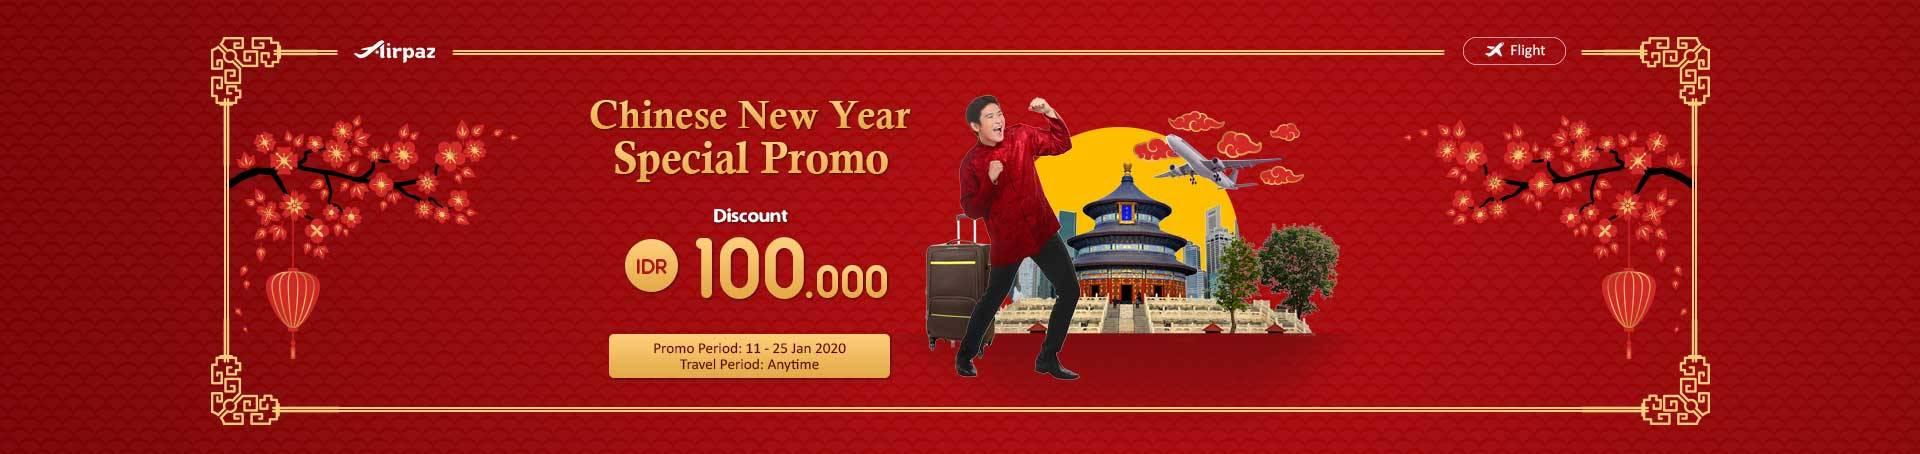 Airpaz Promo Chinese New Year Special Deals For You, Enjoy Rp 100,000 Discount